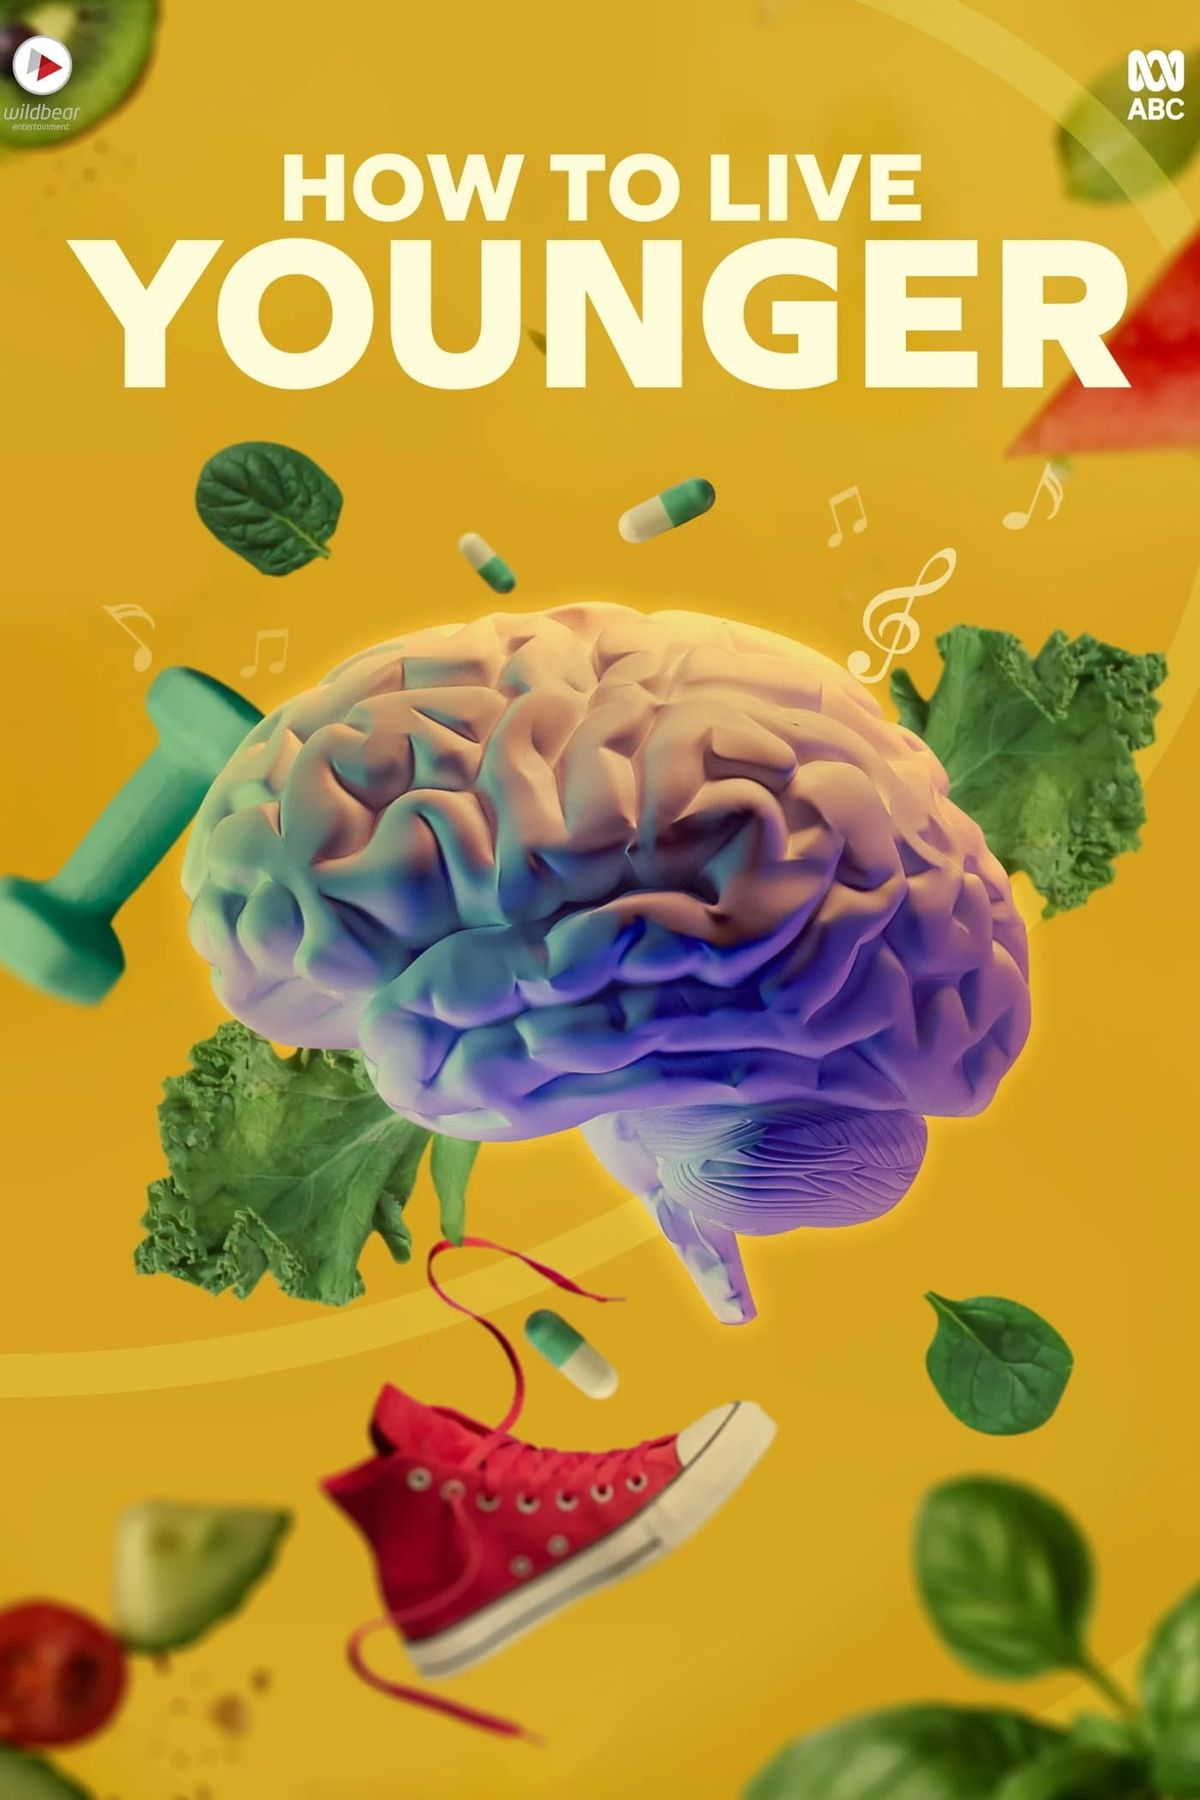 How to Live Younger